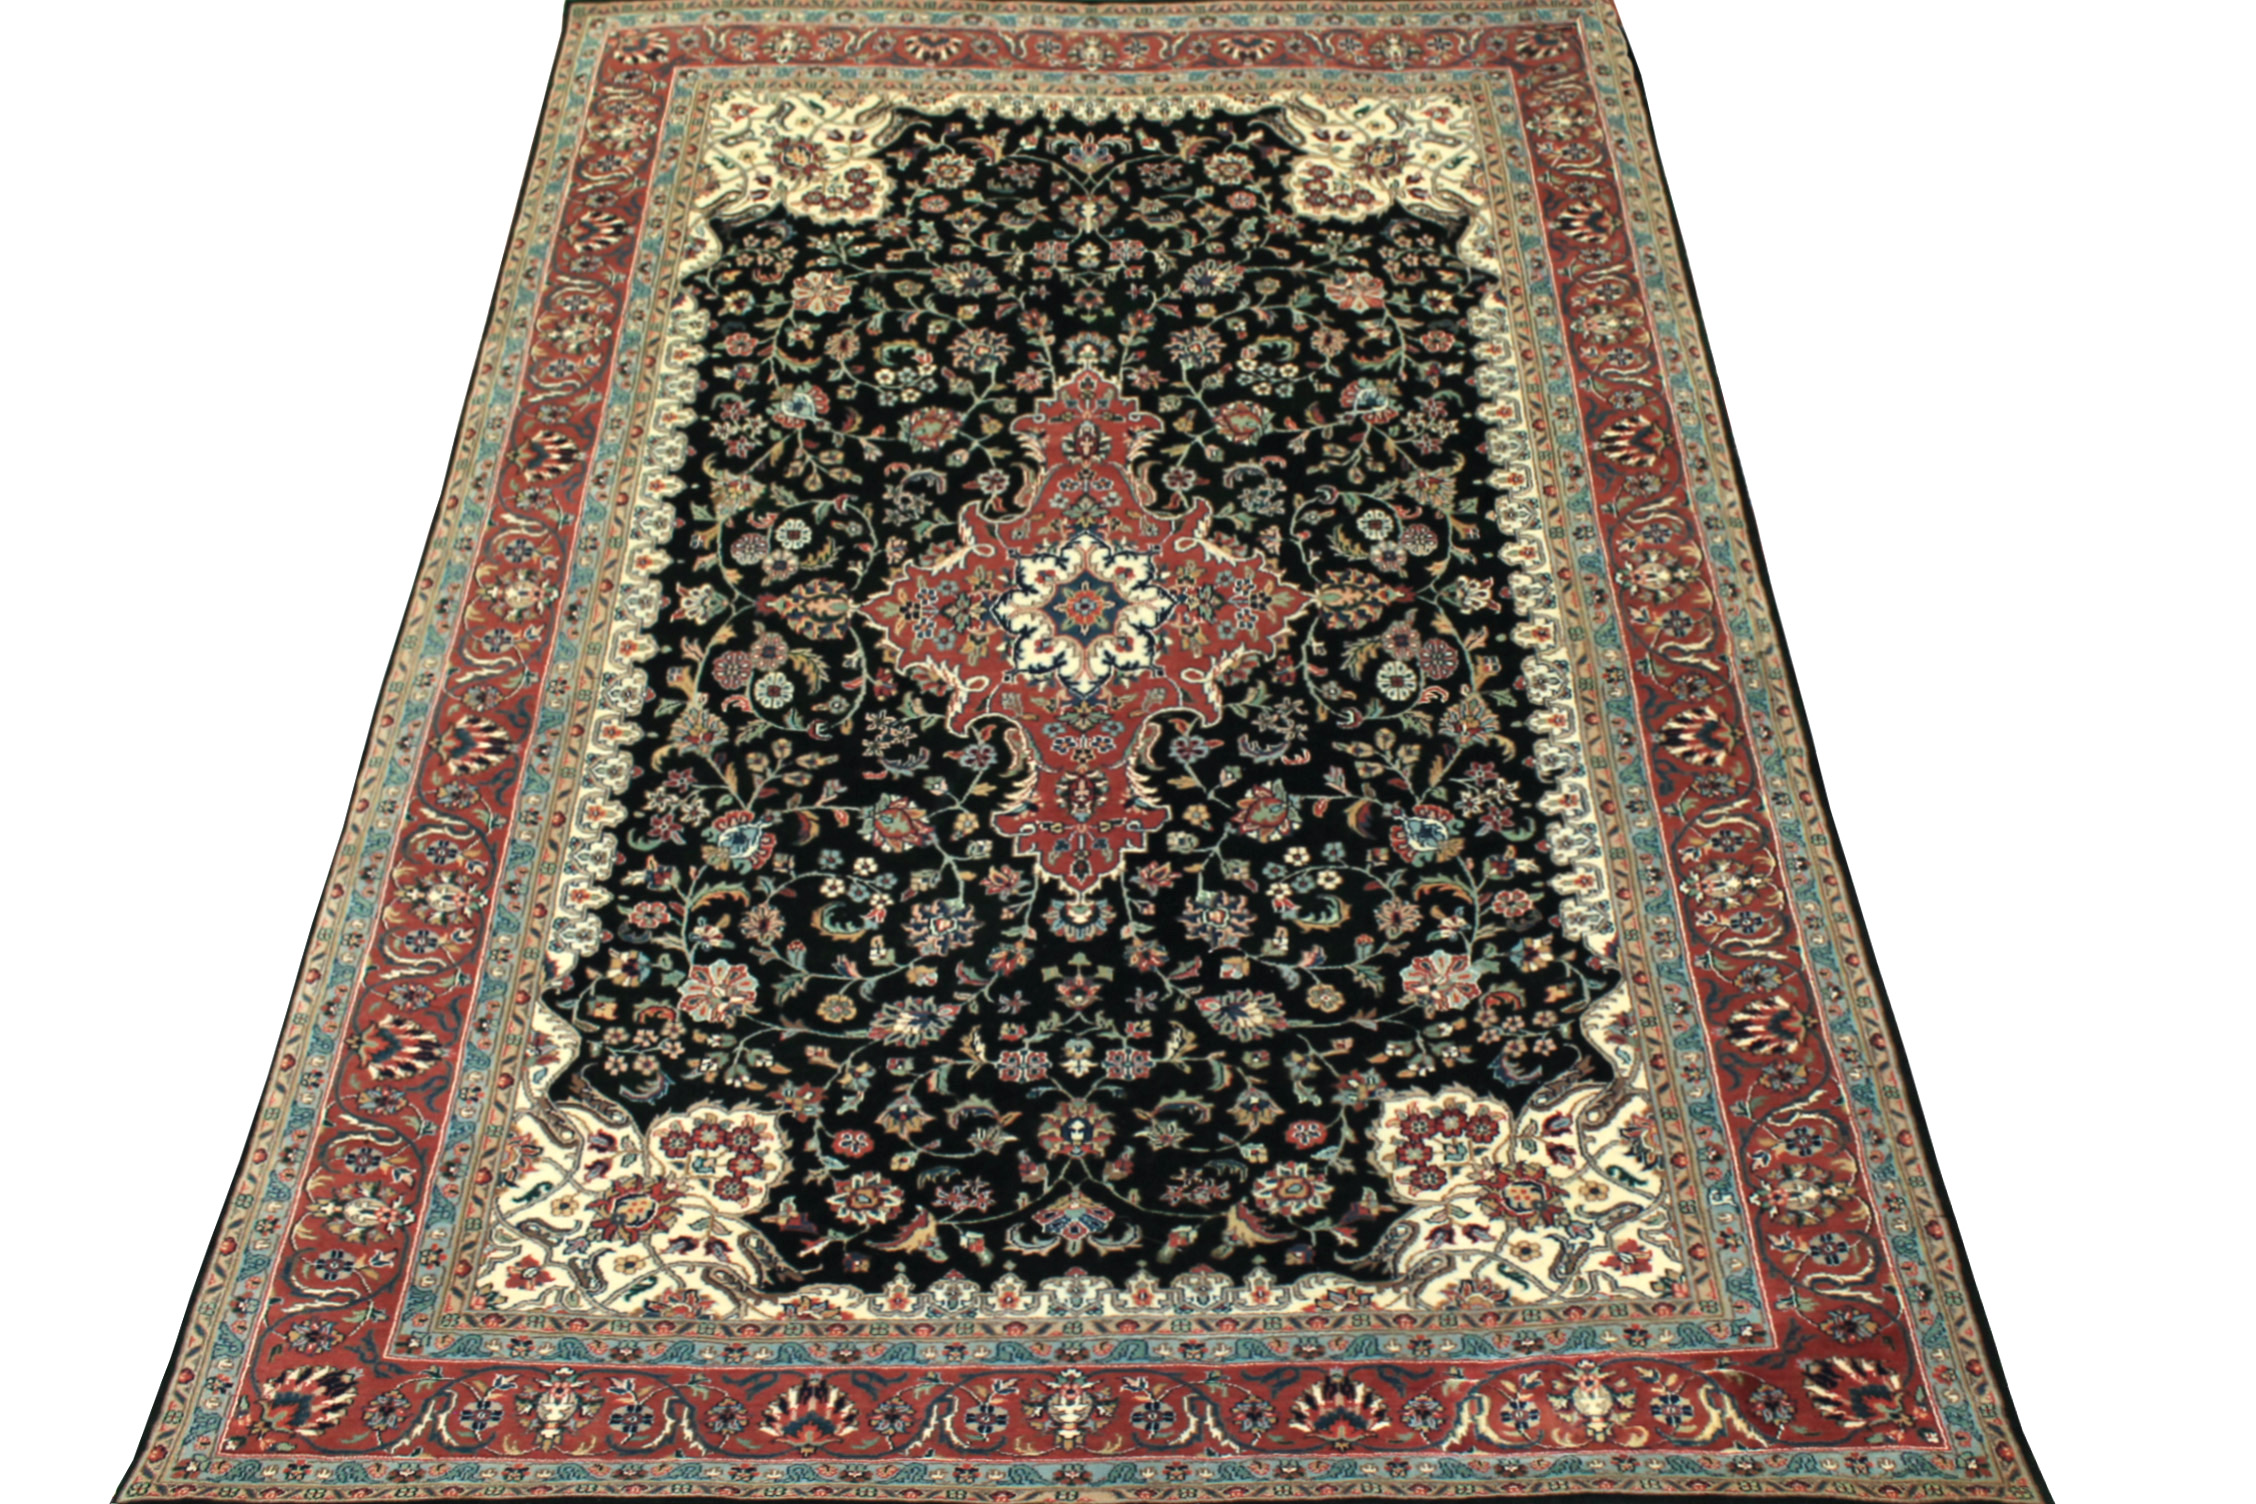 6x9 Traditional Hand Knotted Wool Area Rug - MR0728